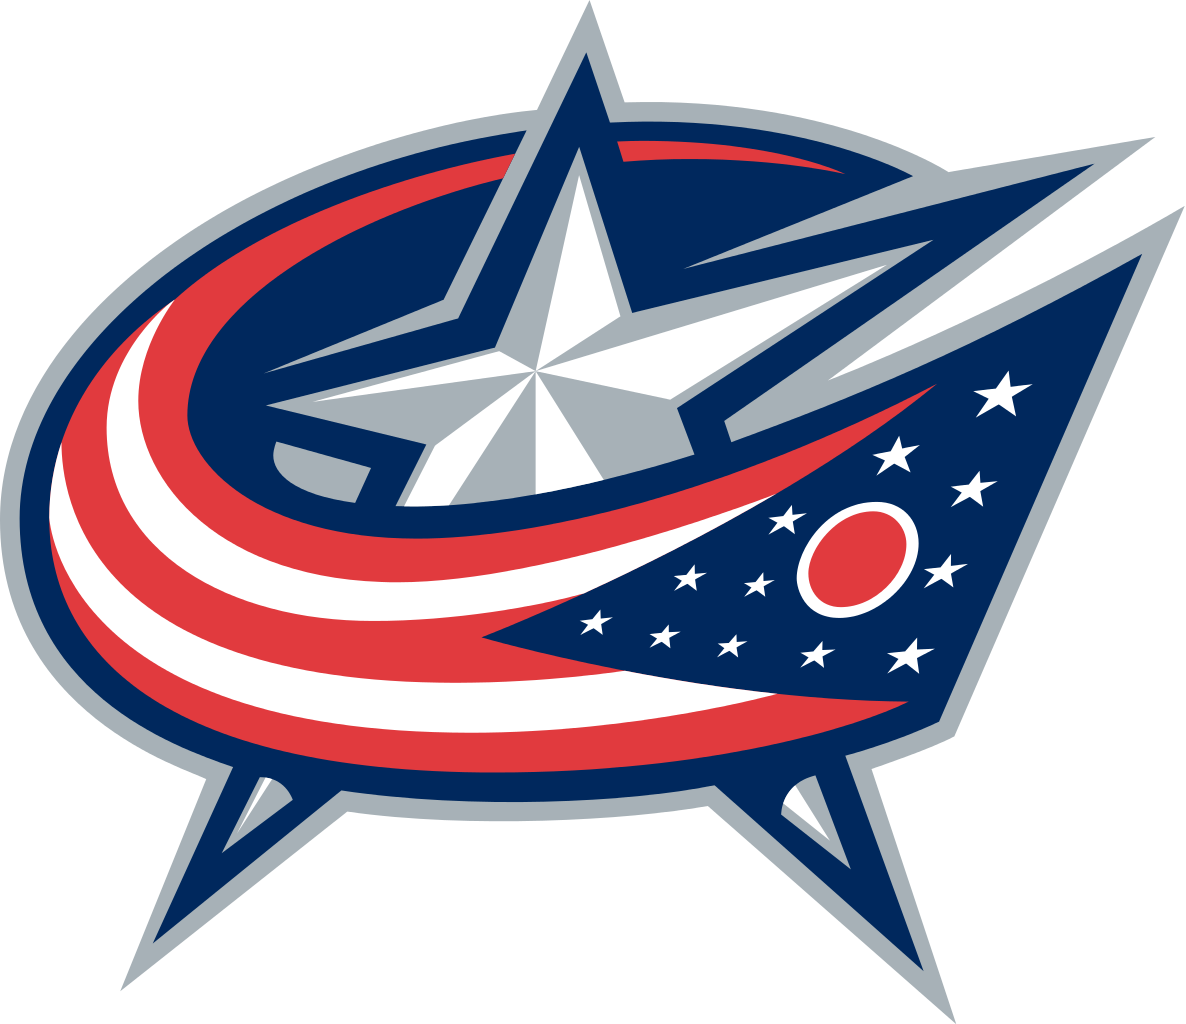 Vector ohio red. The columbus blue jackets